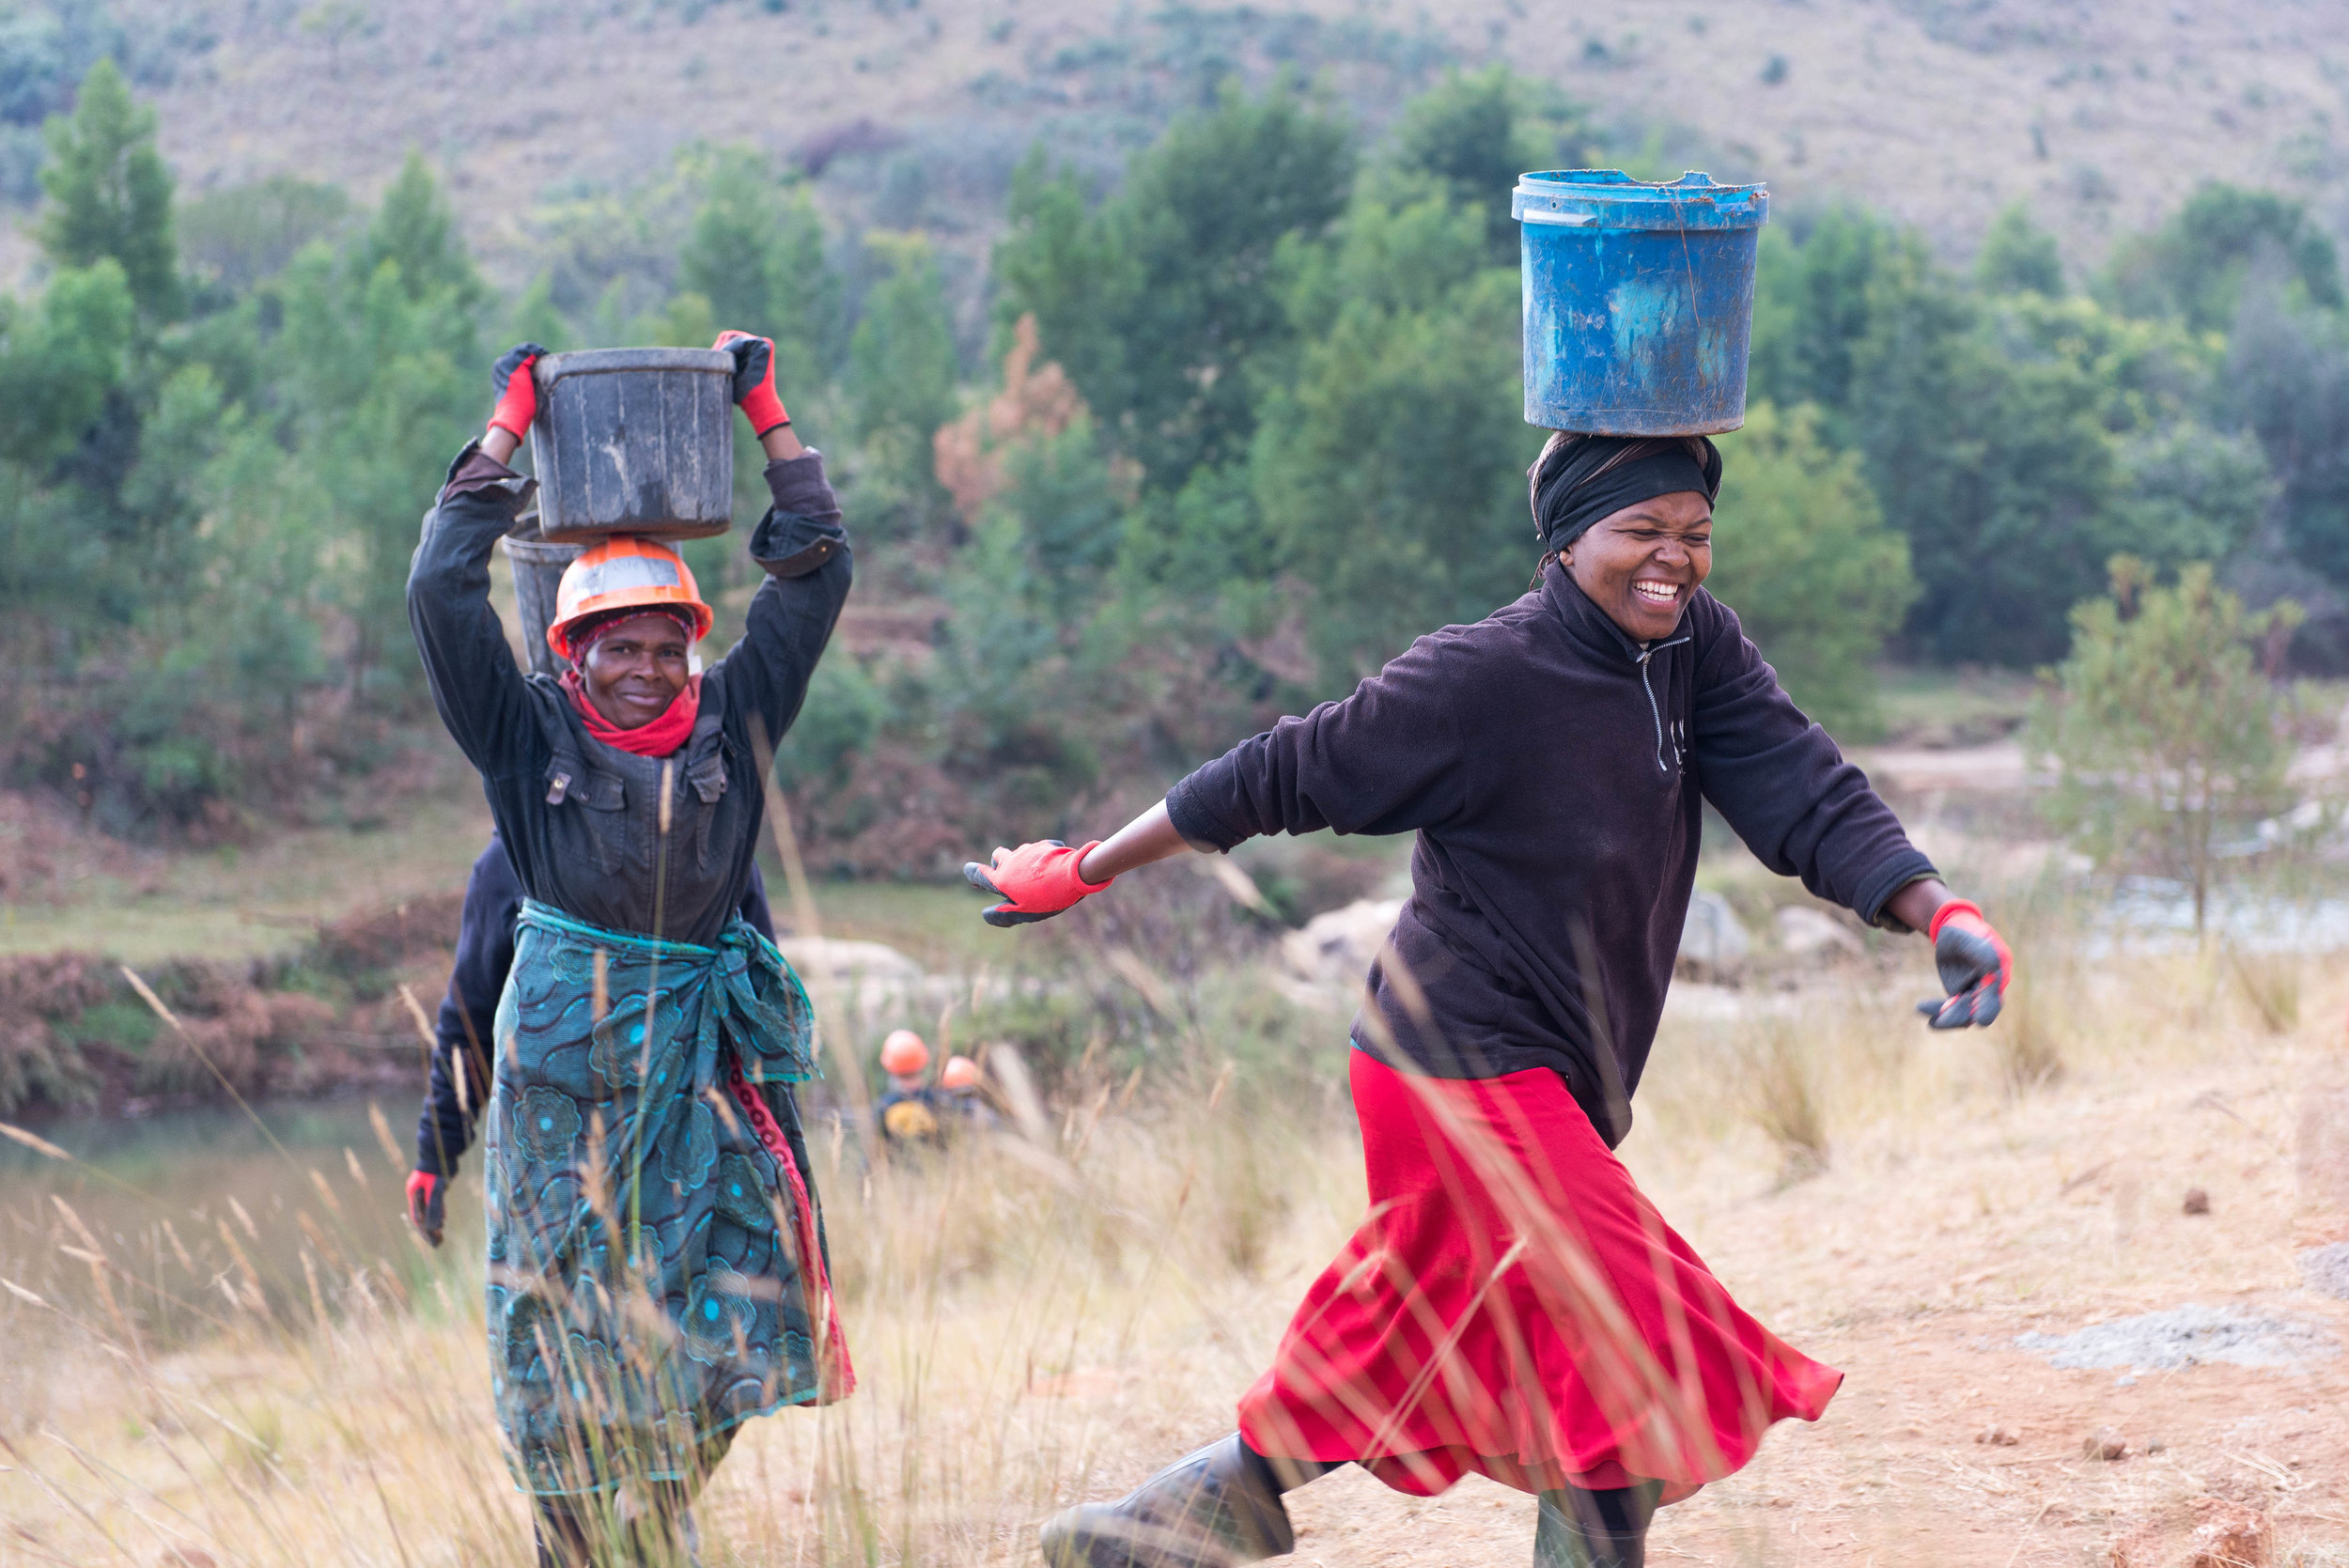 2017 Collaborative Construction: Madison Sankovitz, University of Colorado Boulder   Carrying sand and water was a daily task on the bridge site. Edlangeni, Swaziland